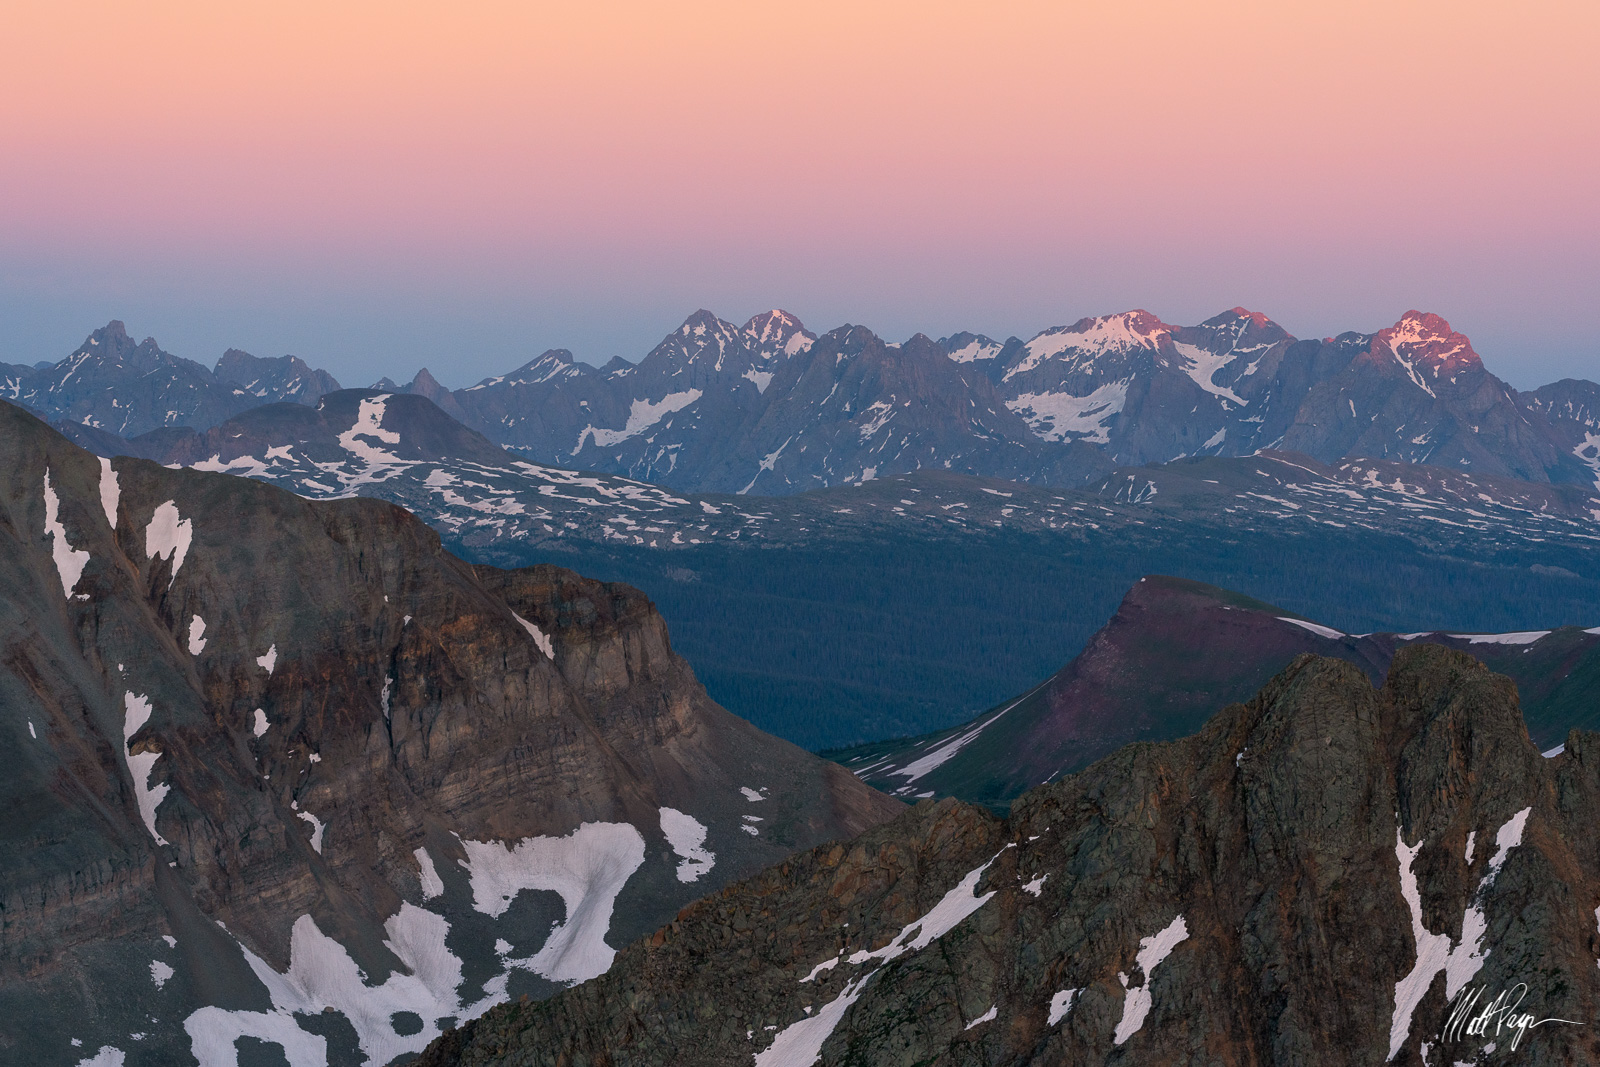 13ers, 14ers, Belt of Venus, Colorado, Durango, Eolus Peak, Jagged Mountain, Knife Point, Landscape, Mountains, Needle Mountains, North Eolus Peak, Pigeon Peak, San Juan Mountains, Silverton, Snow Cap, photo